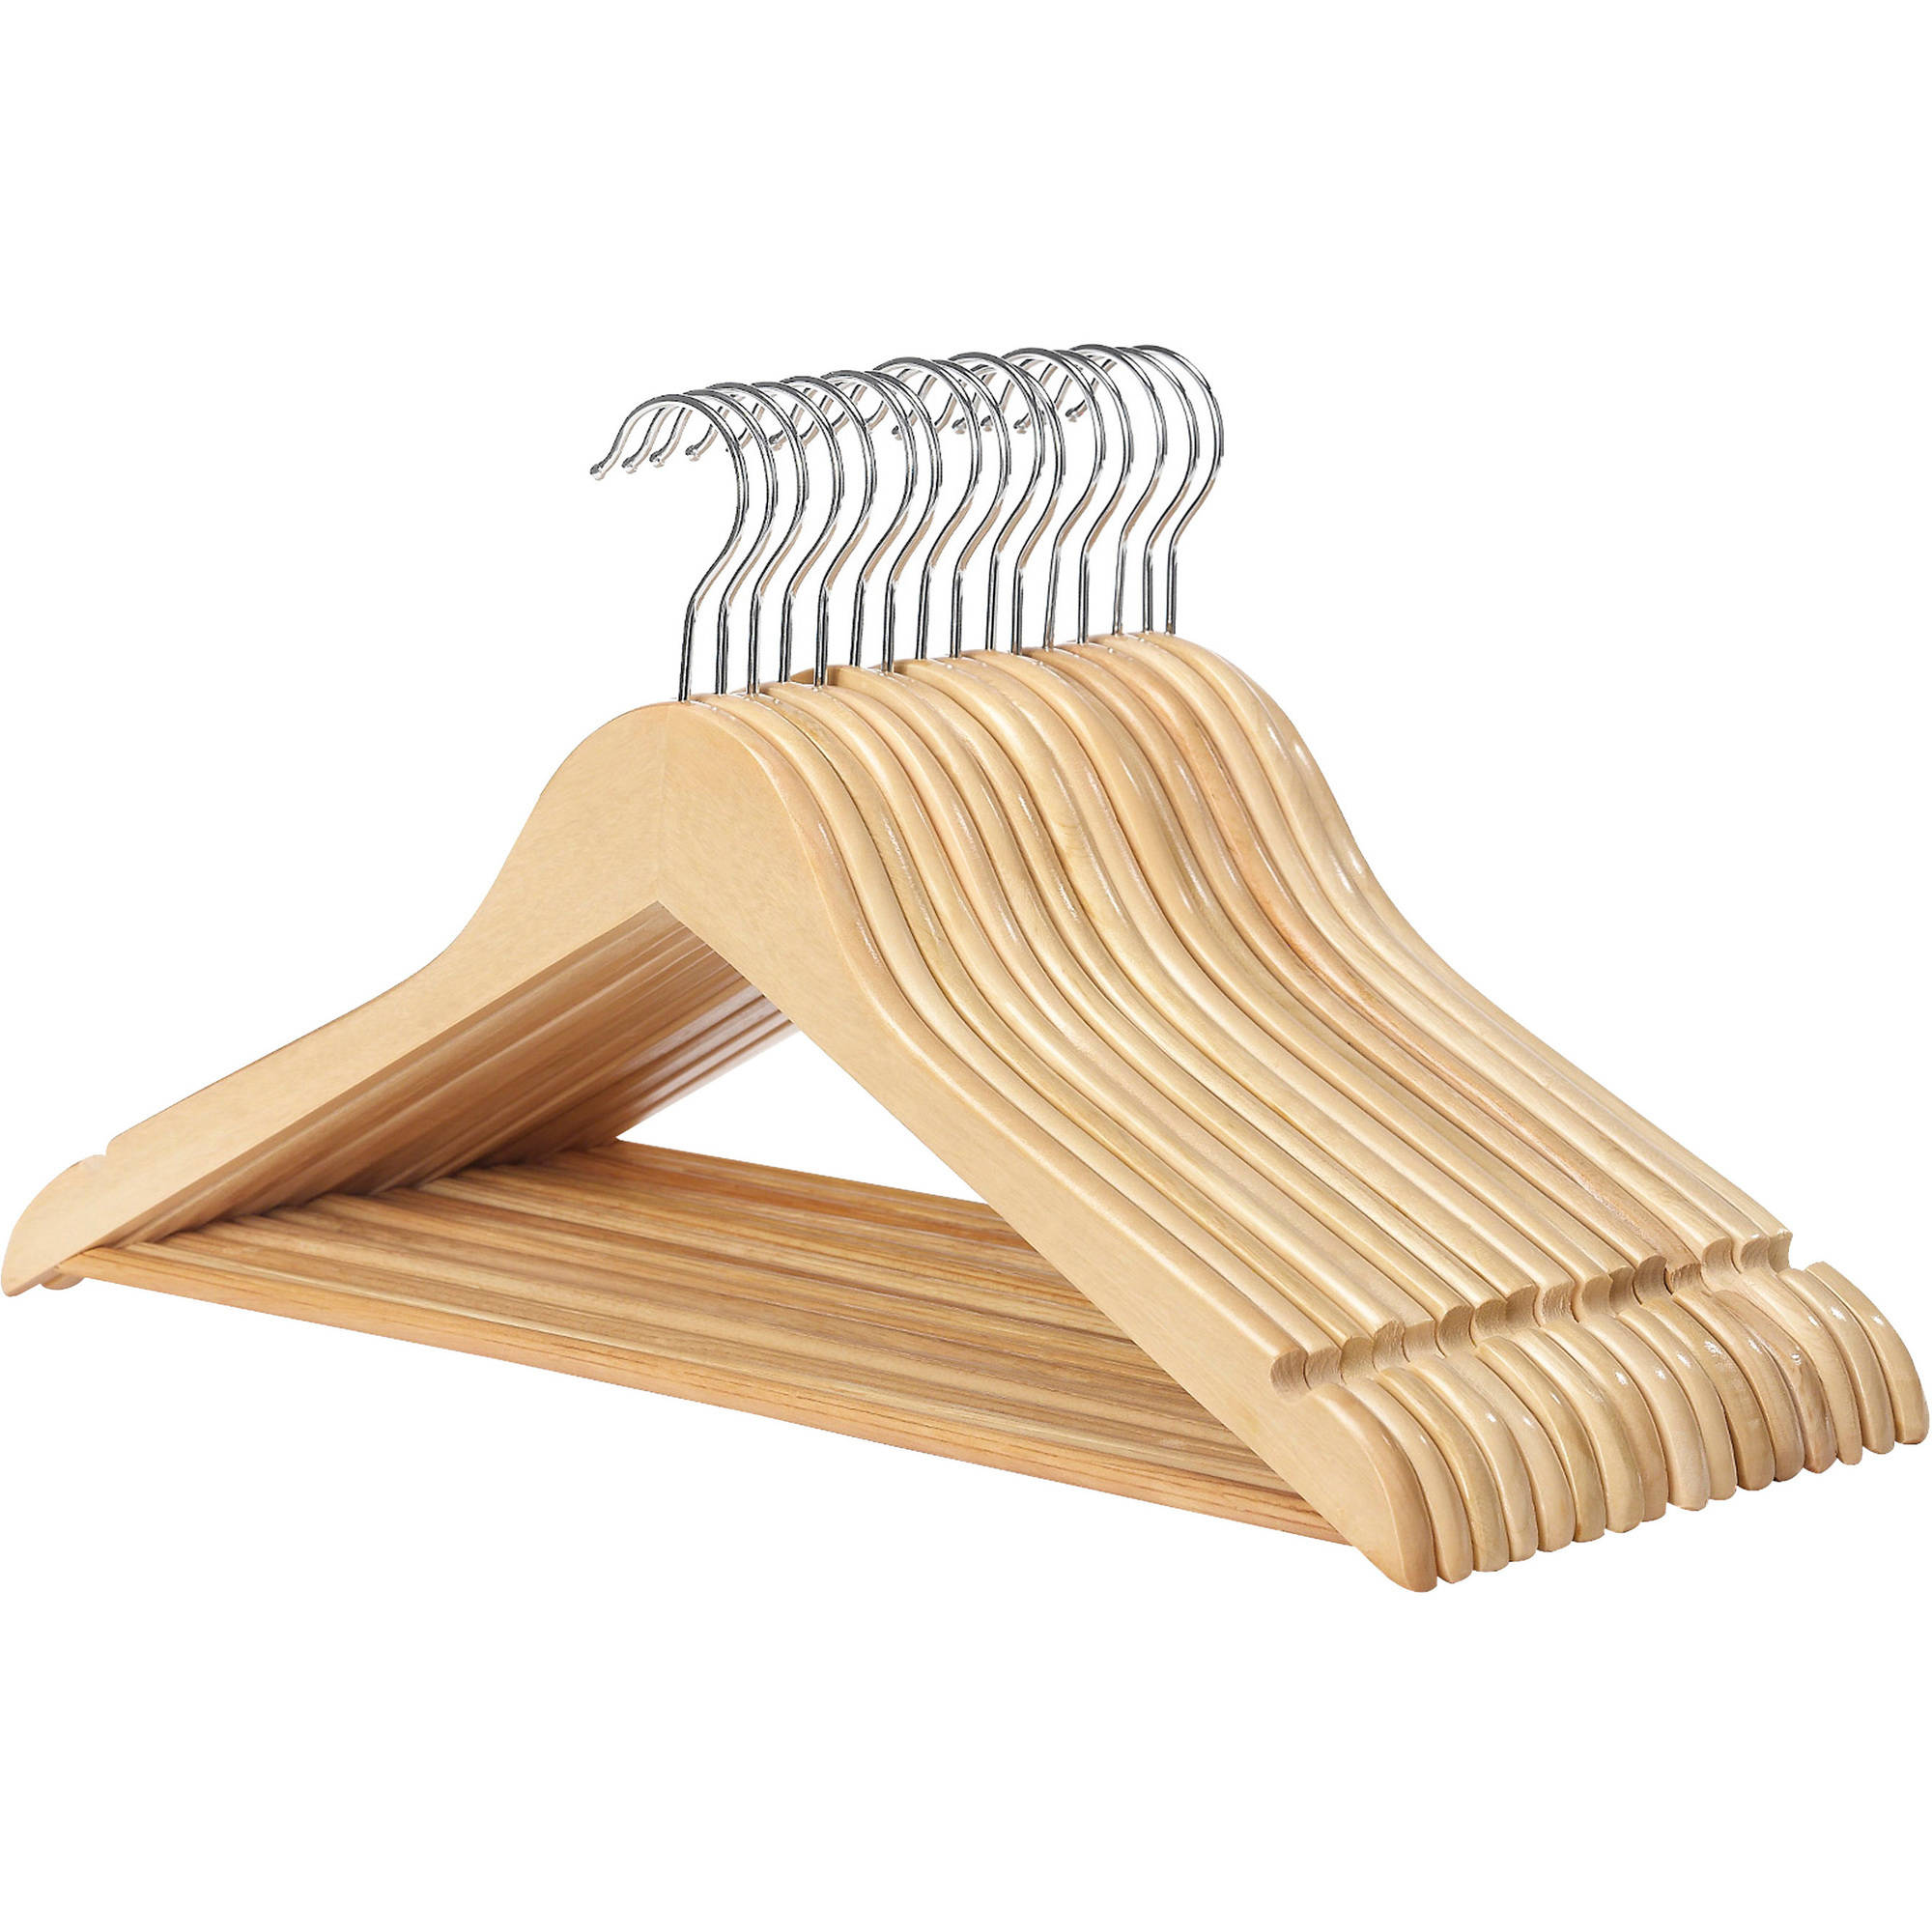 Whitmor Wood Suit Hangers, Set of 16